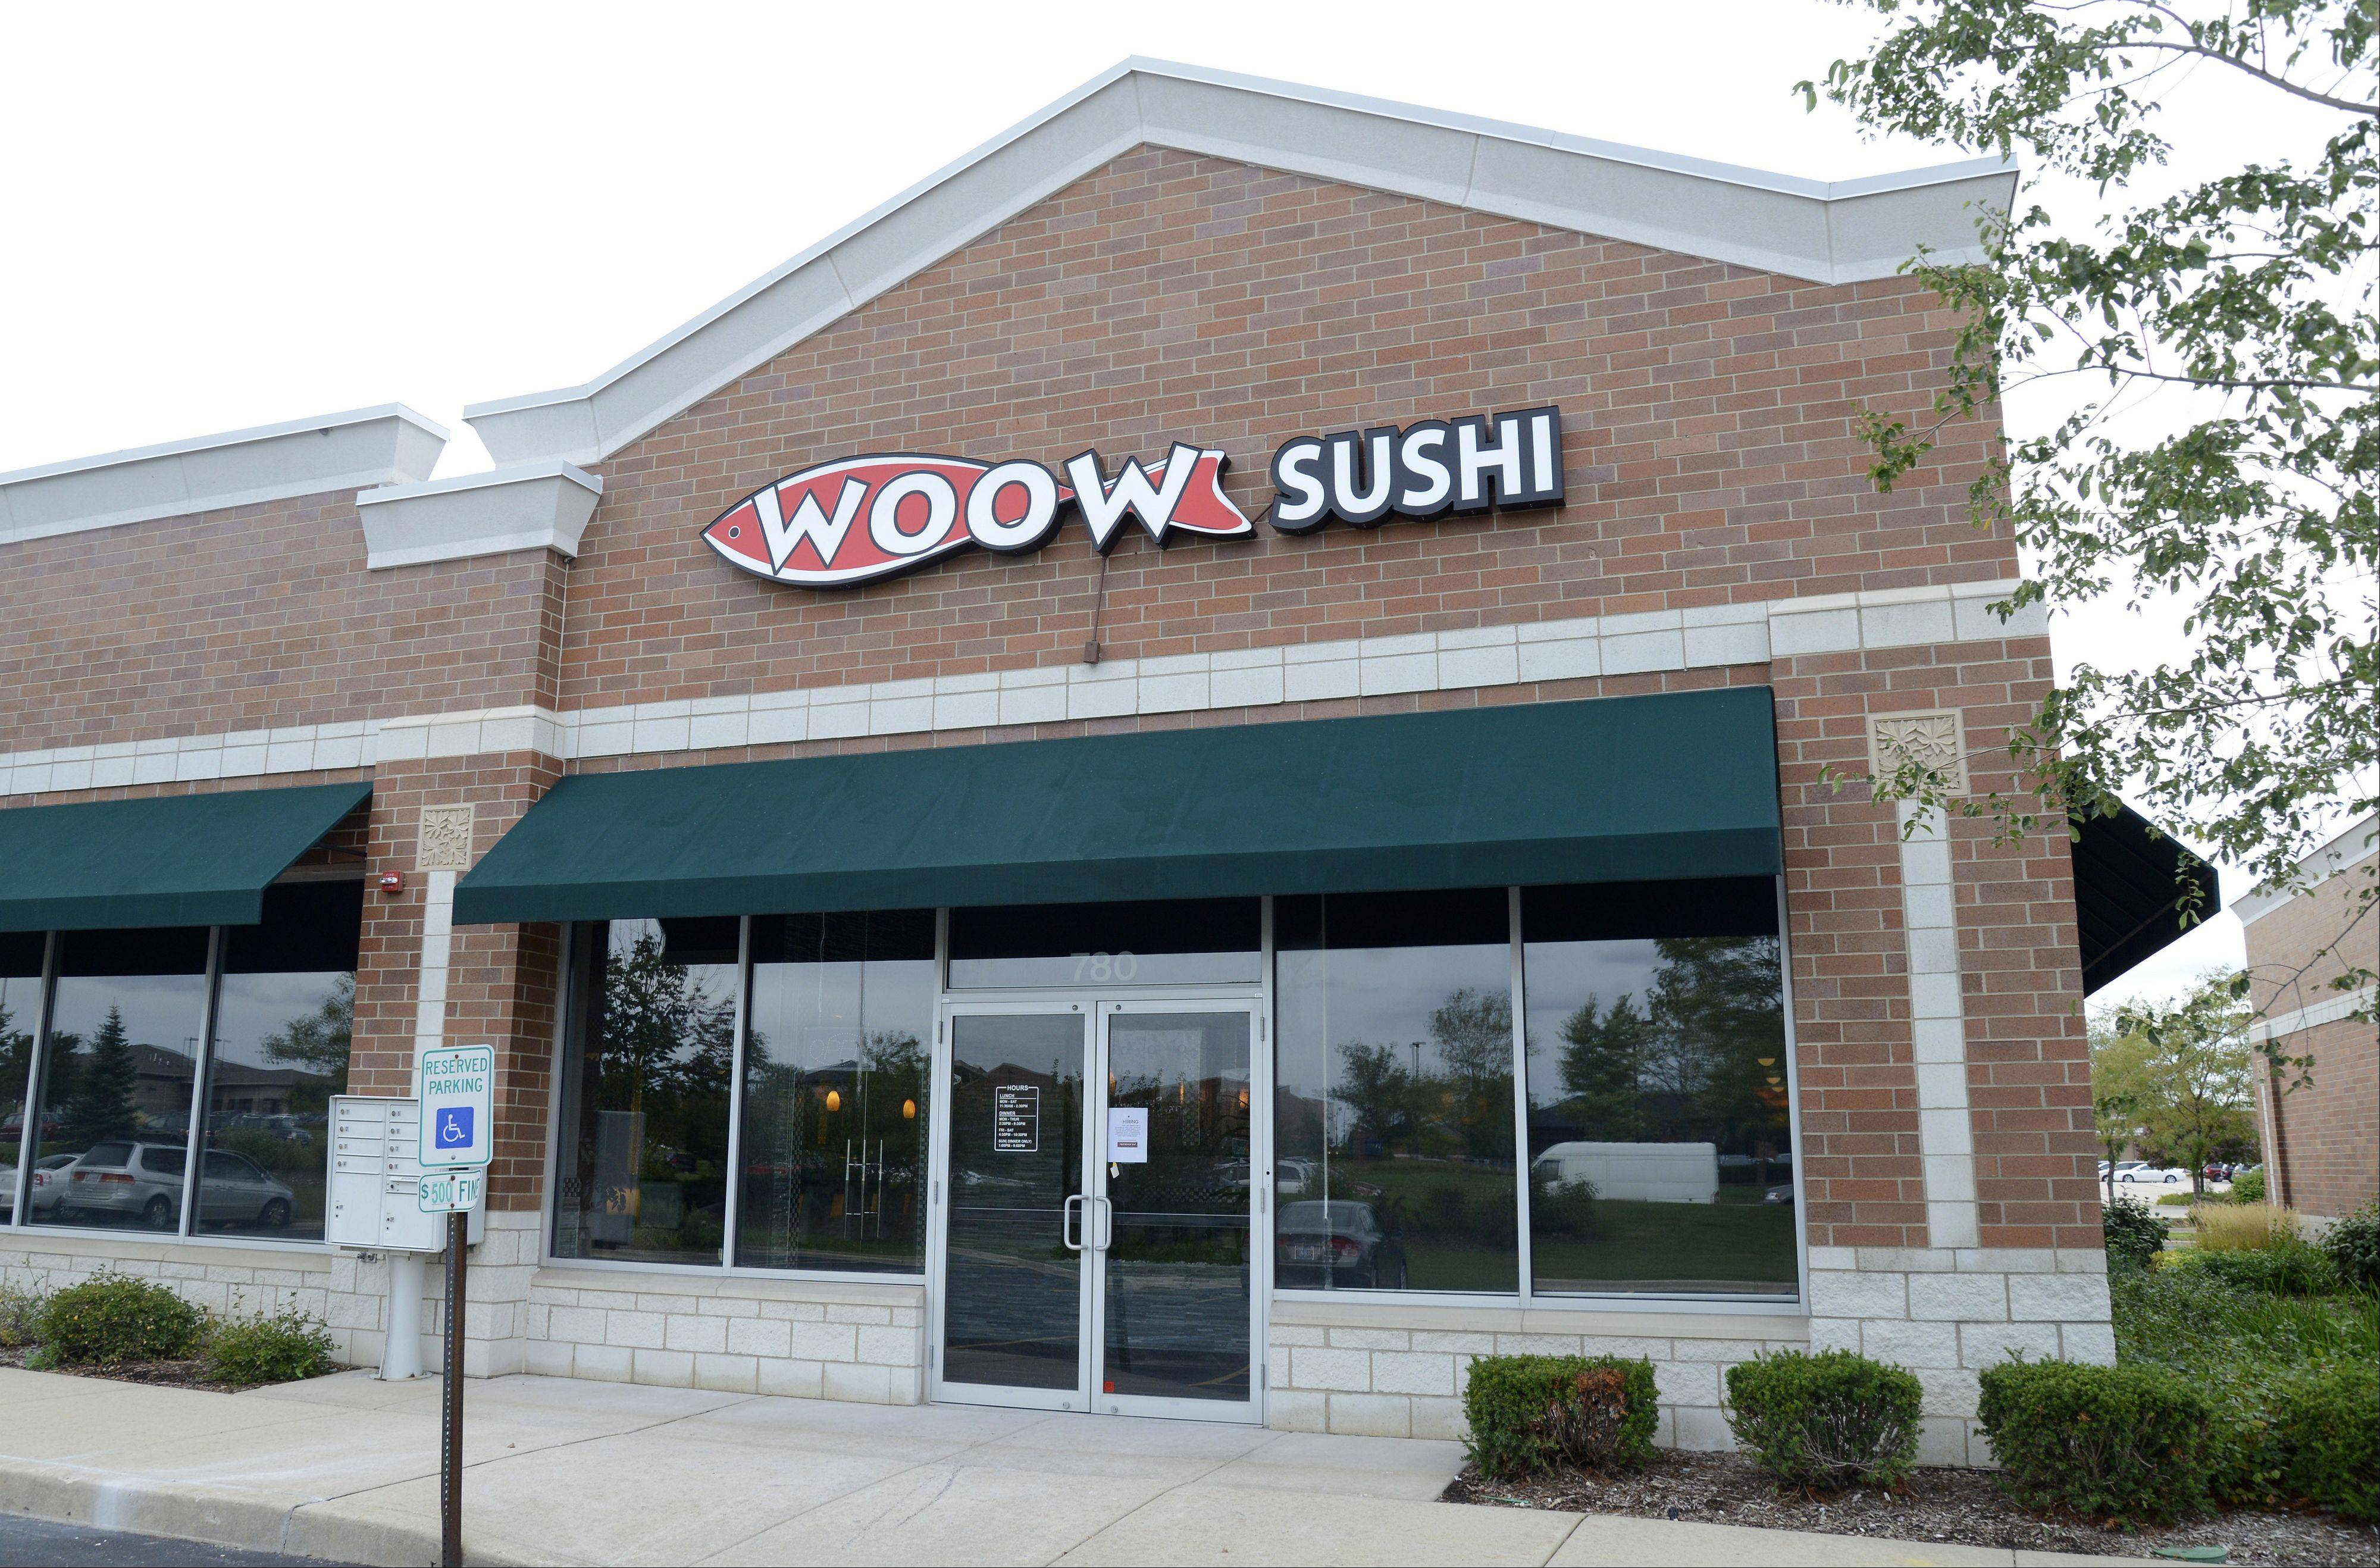 Woow Sushi will open soon on Randall Road in Algonquin.